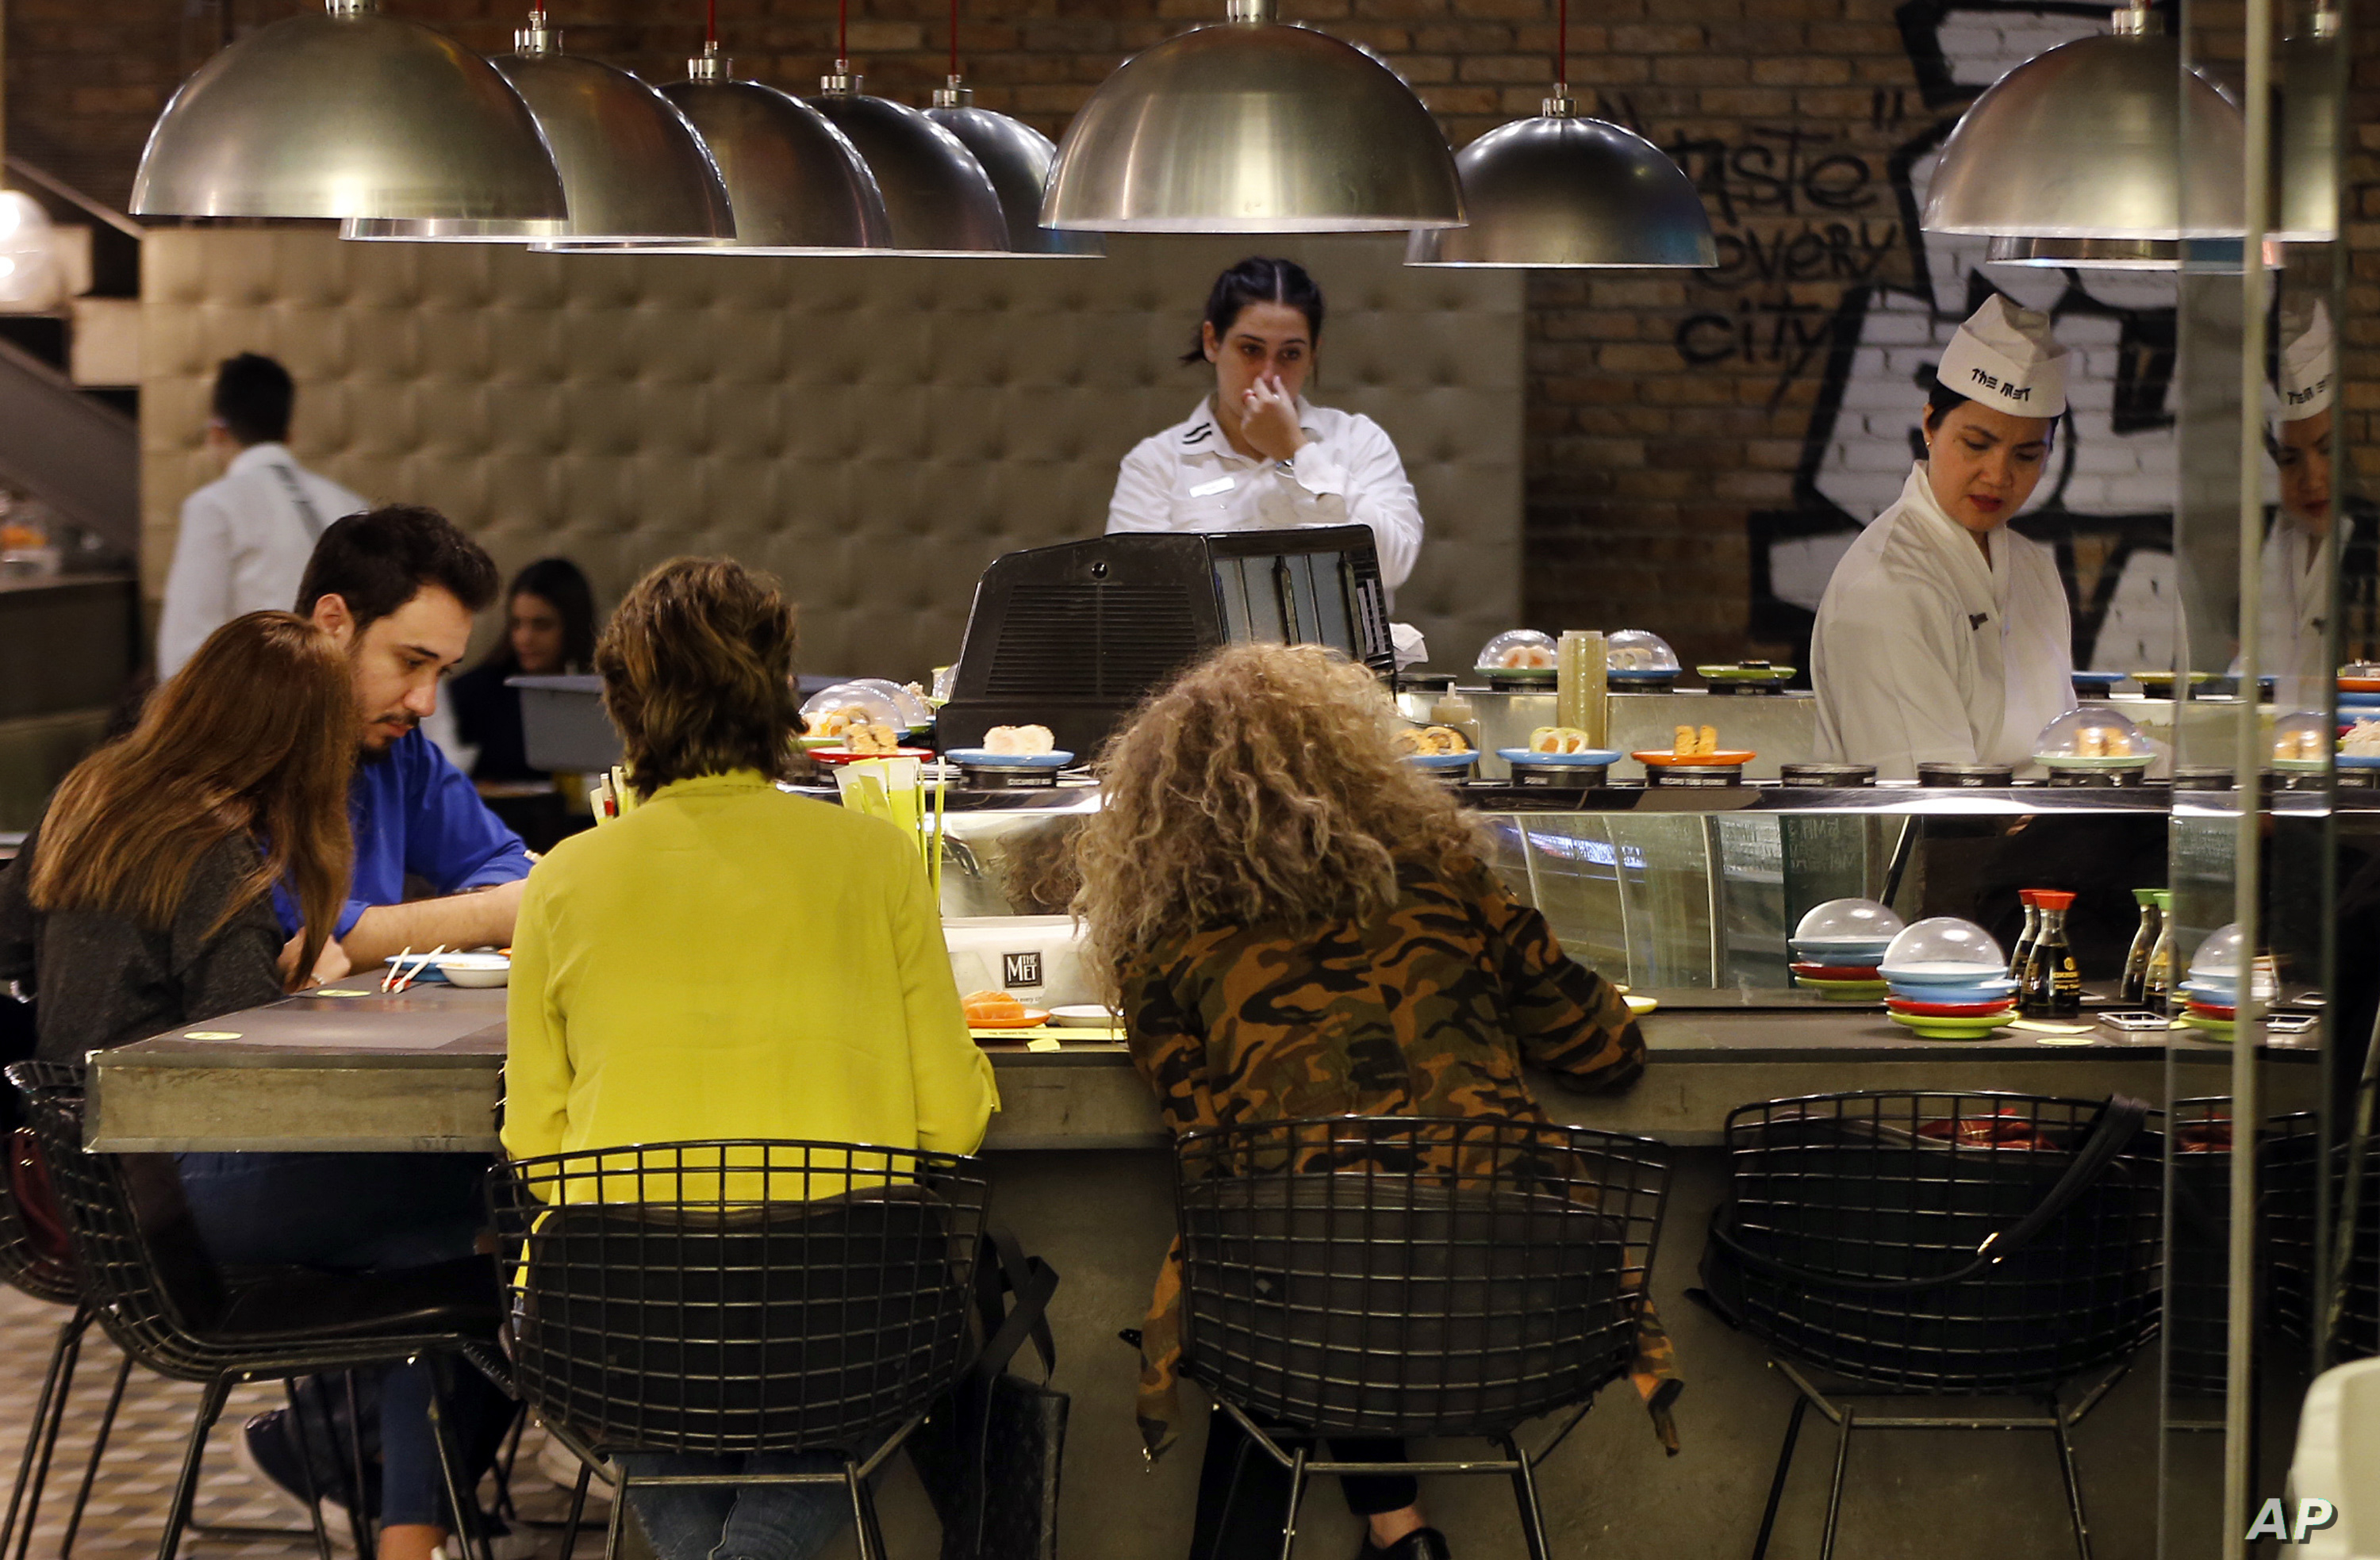 People eat sushi at a restaurant in Beirut, Lebanon, Nov. 10, 2017. Prime Minister Saad Hariri's  resignation could unravel the first steps in years toward injecting some cash and confidence in Lebanon's anemic economy.